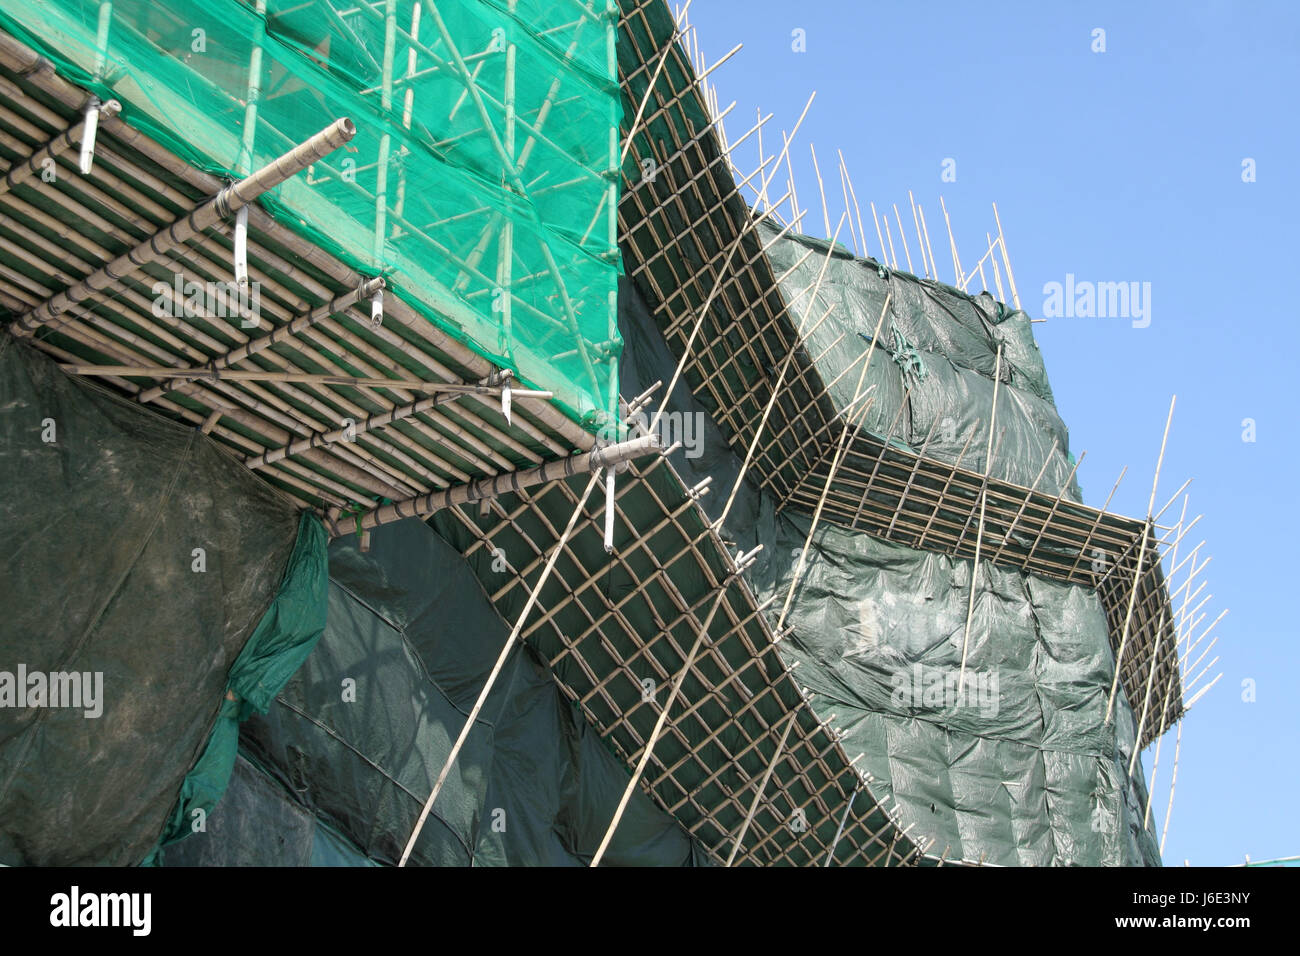 bamboo china style of construction architecture architectural style scaffold - Stock Image